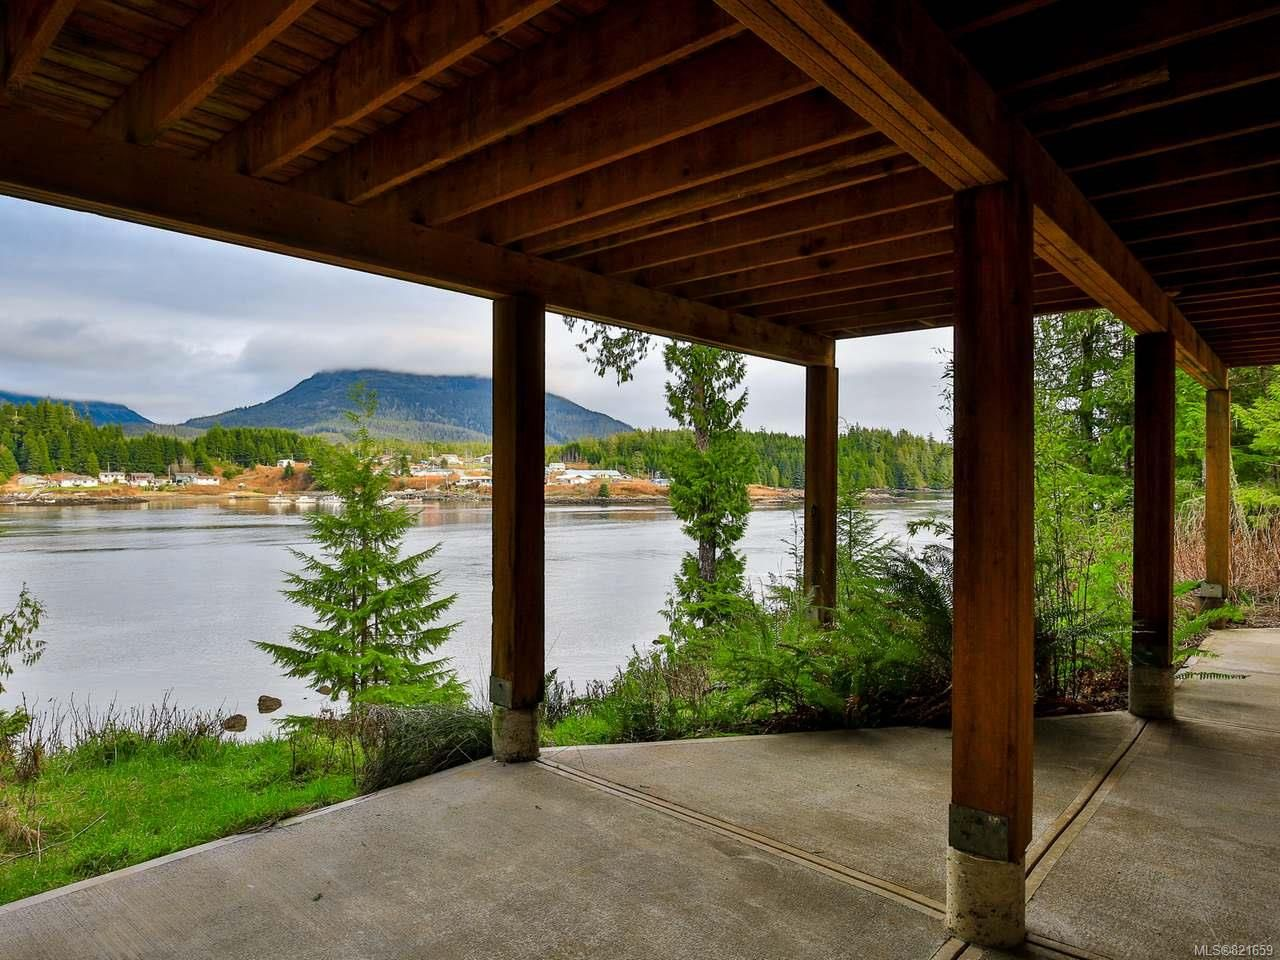 Photo 52: Photos: 1049 Helen Rd in UCLUELET: PA Ucluelet House for sale (Port Alberni)  : MLS®# 821659